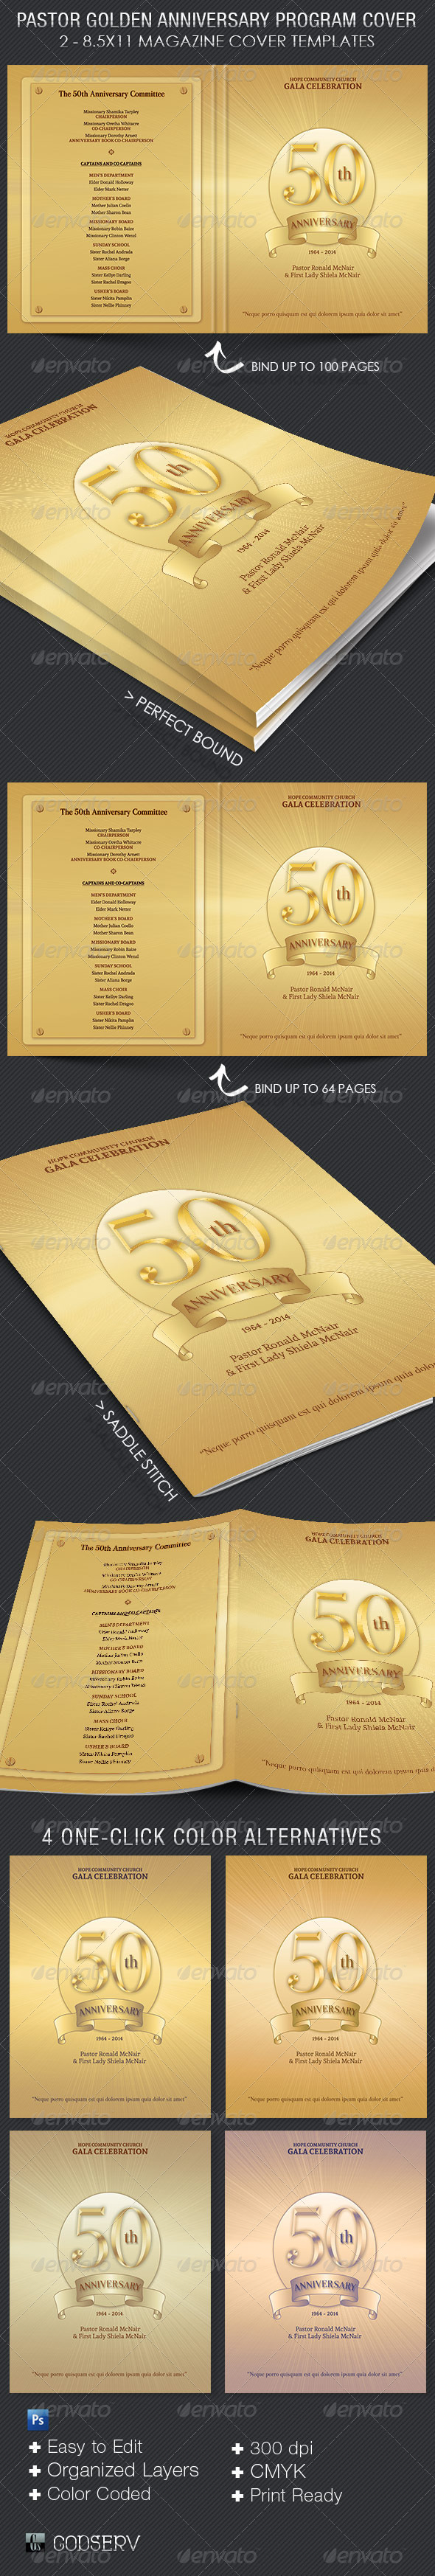 Pastor Golden Anniversary Program Cover Template - Informational Brochures